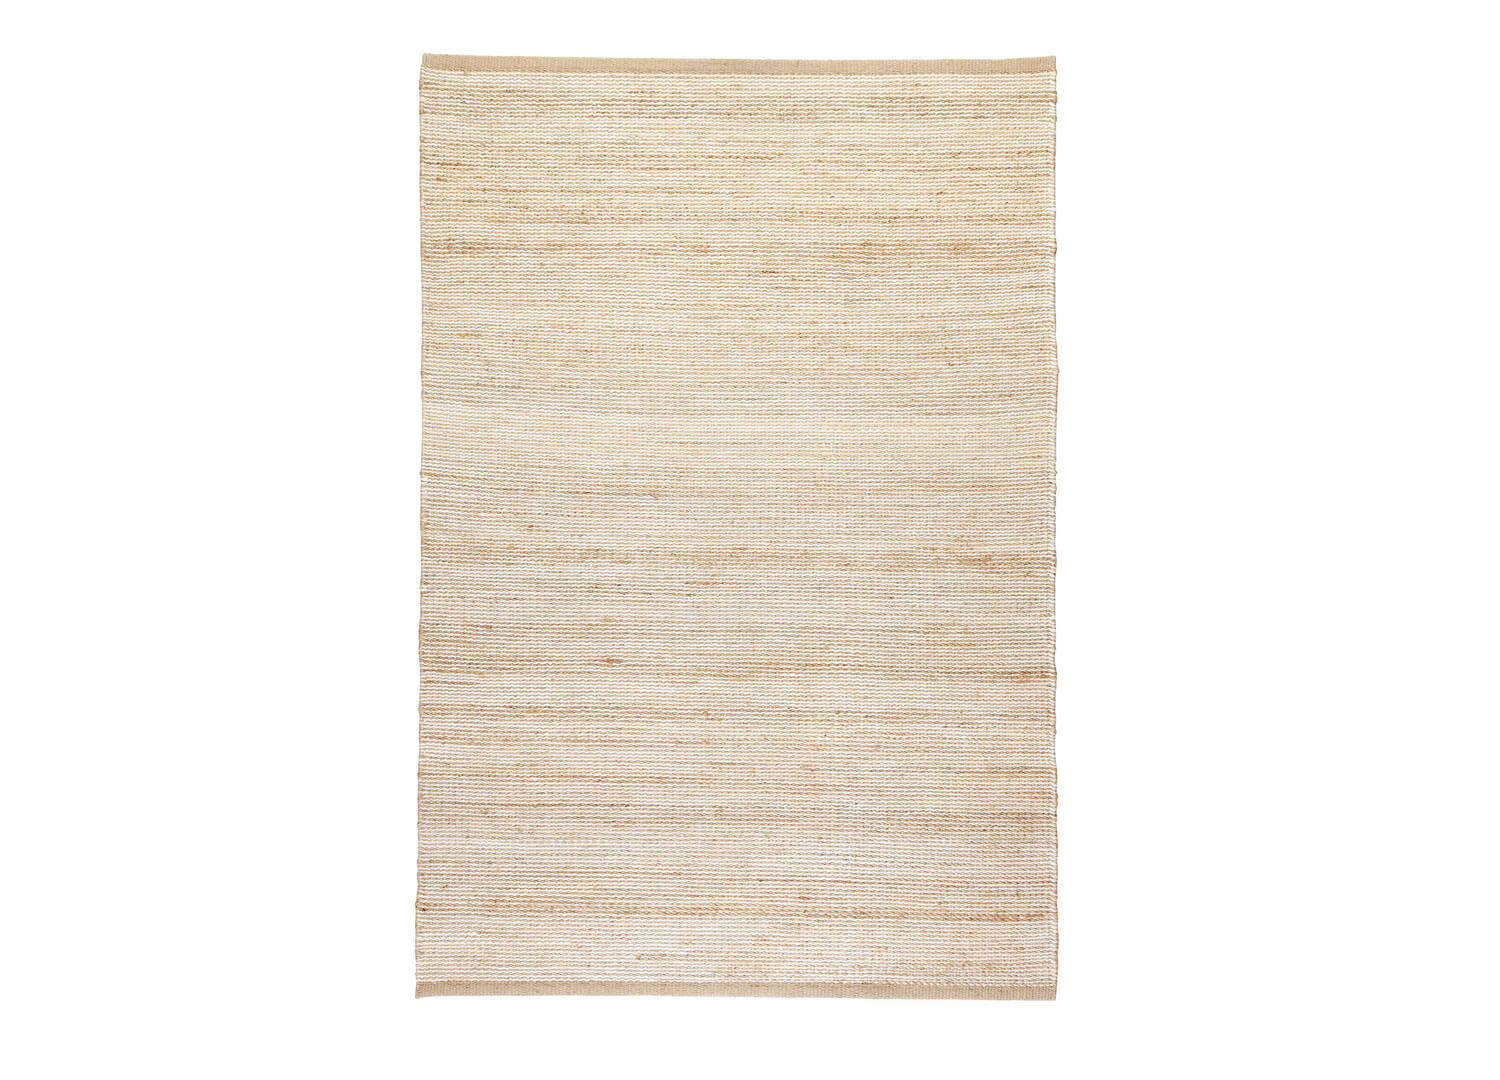 Drift Rug - Natural & White Armadillo & Co